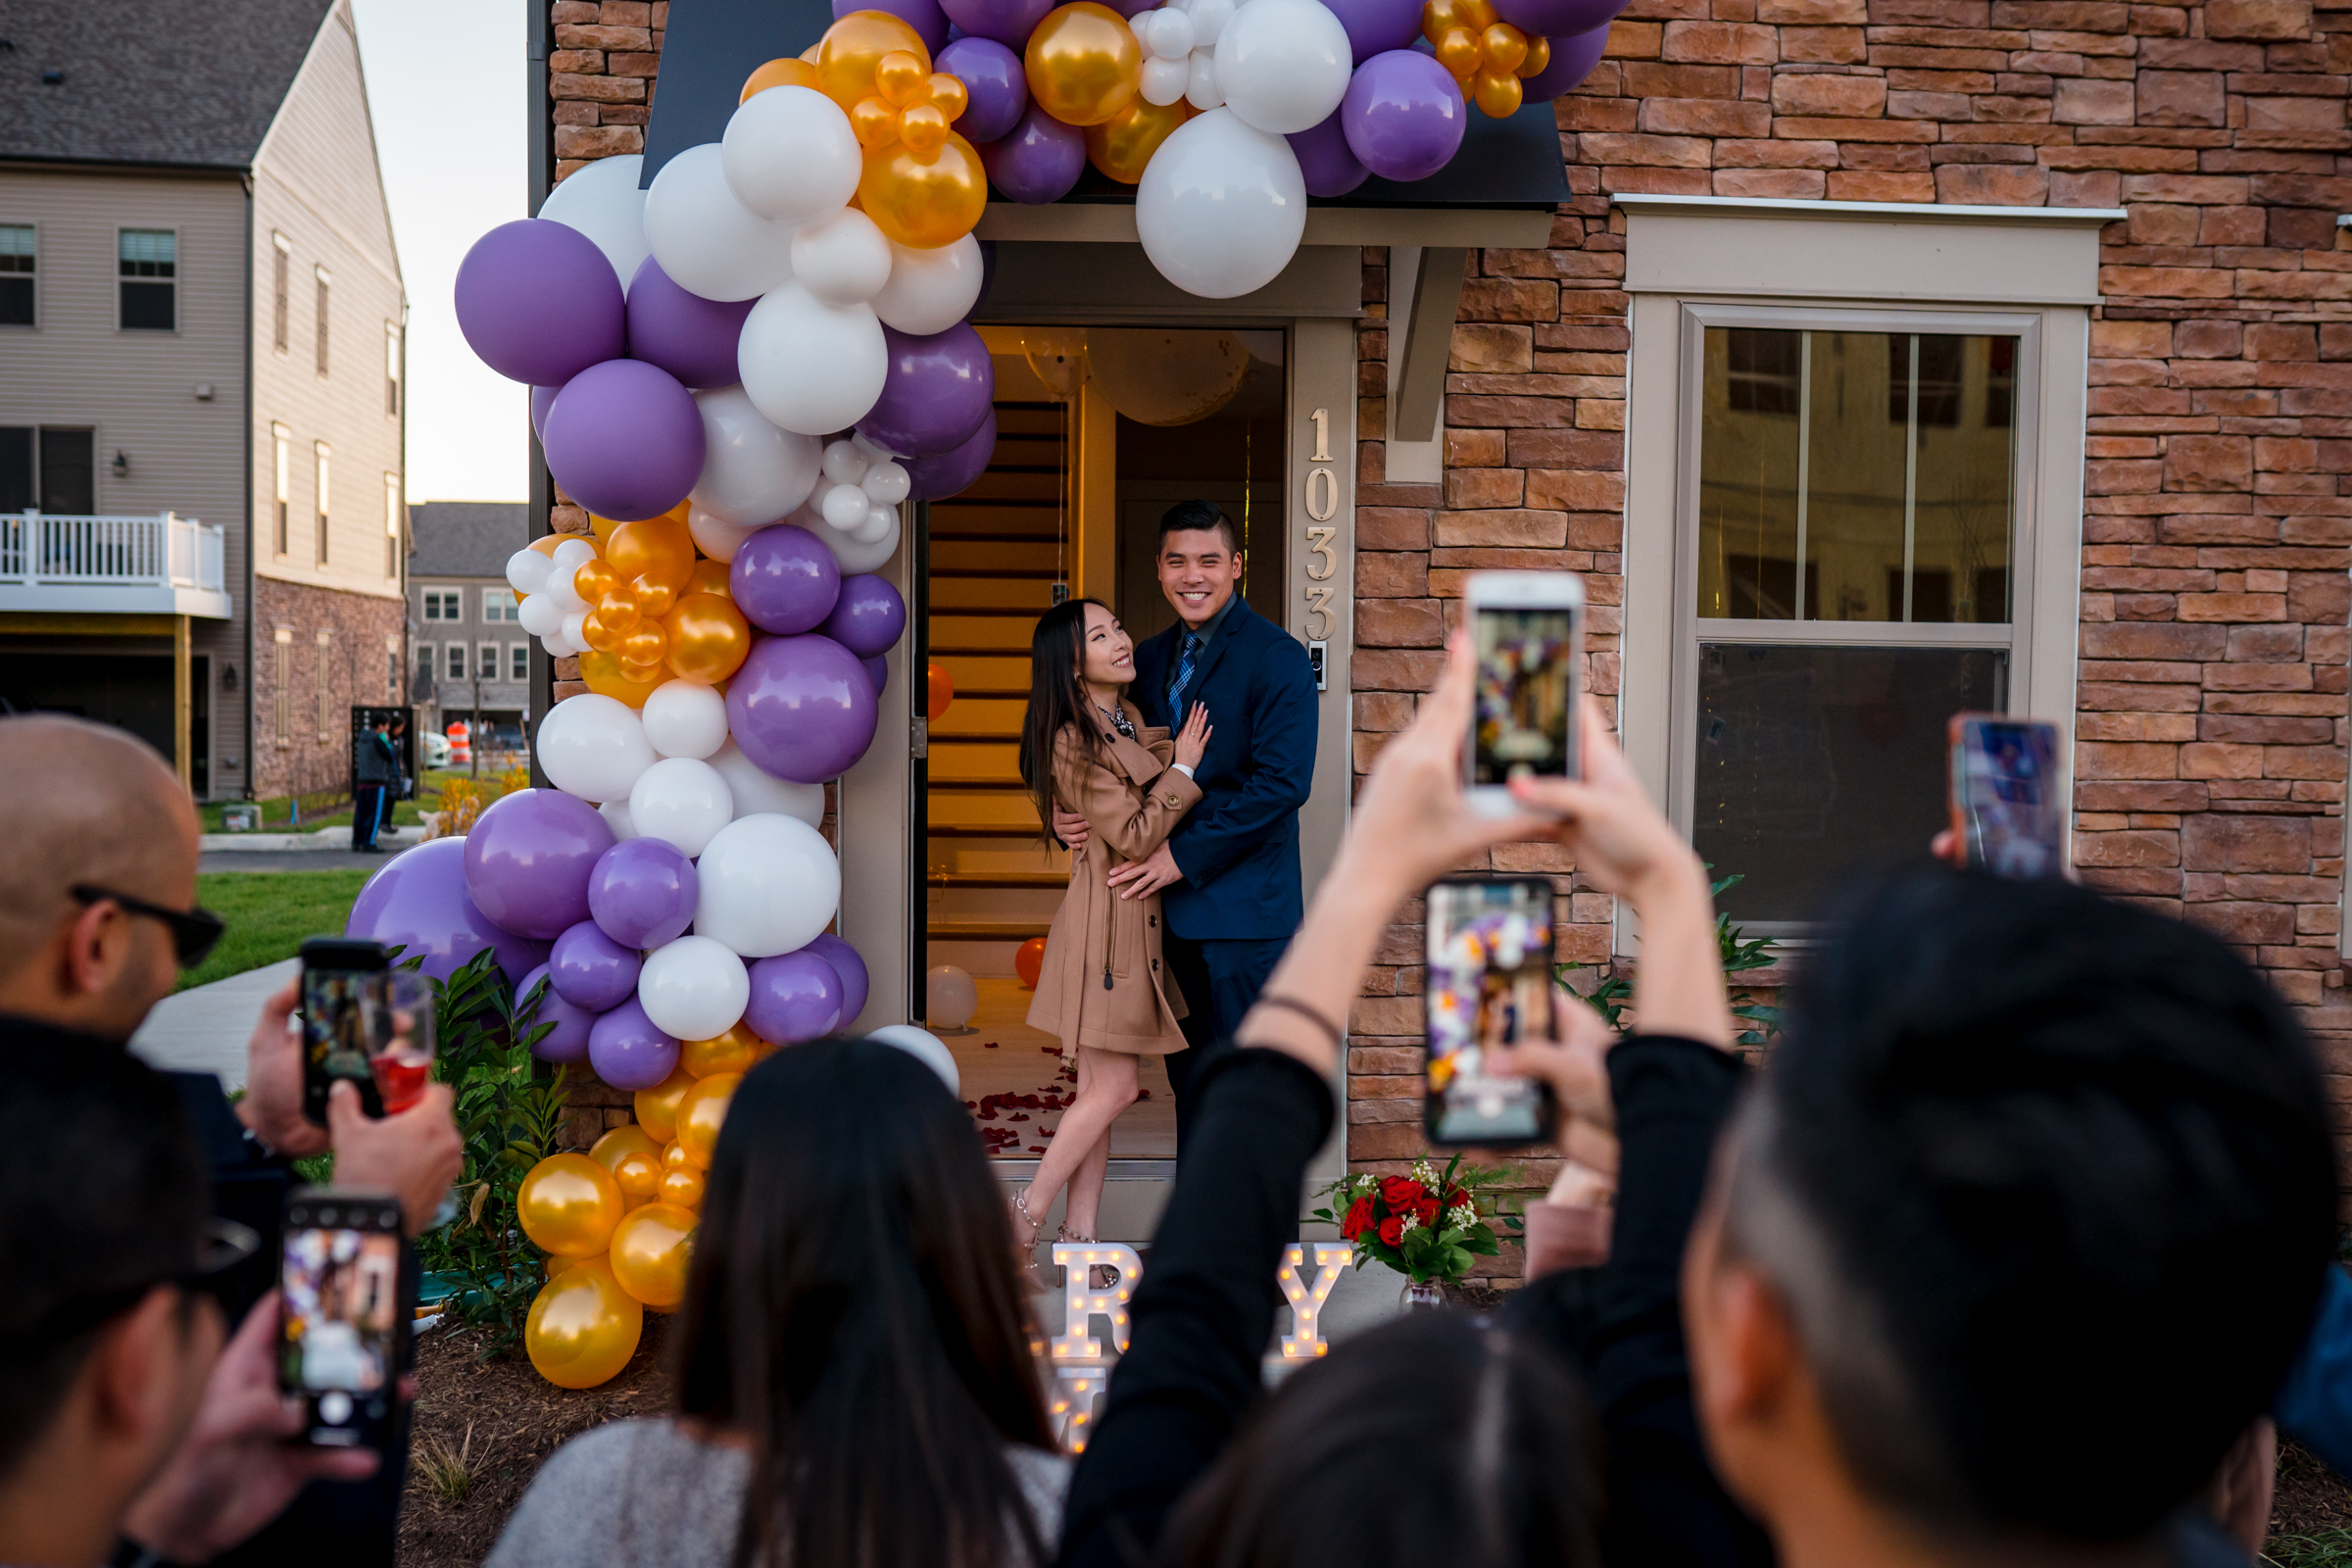 engagement-couple-with-balloons-and-well-wishers-taking-photos